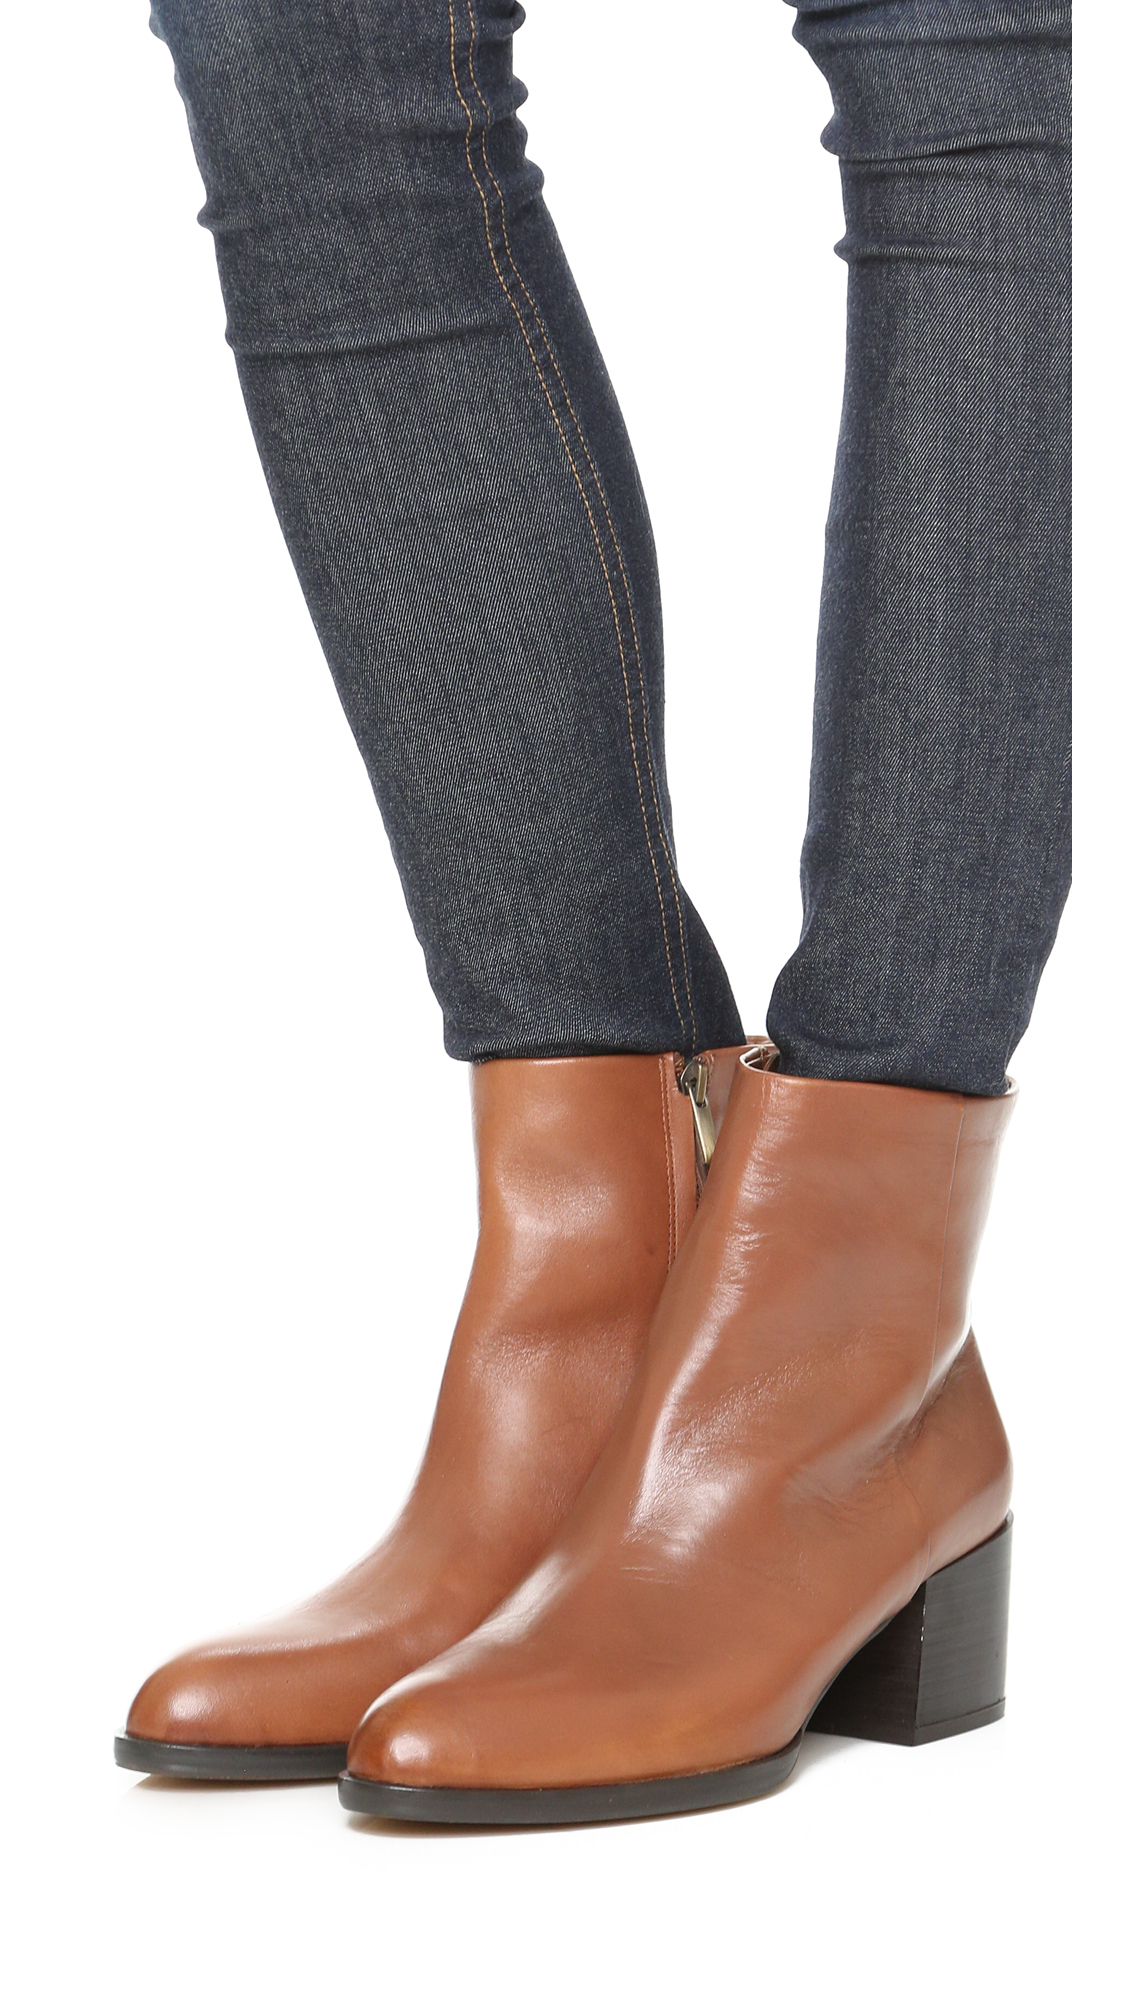 a0f7a83a0258 Lyst - Sam Edelman Joey Booties in Brown